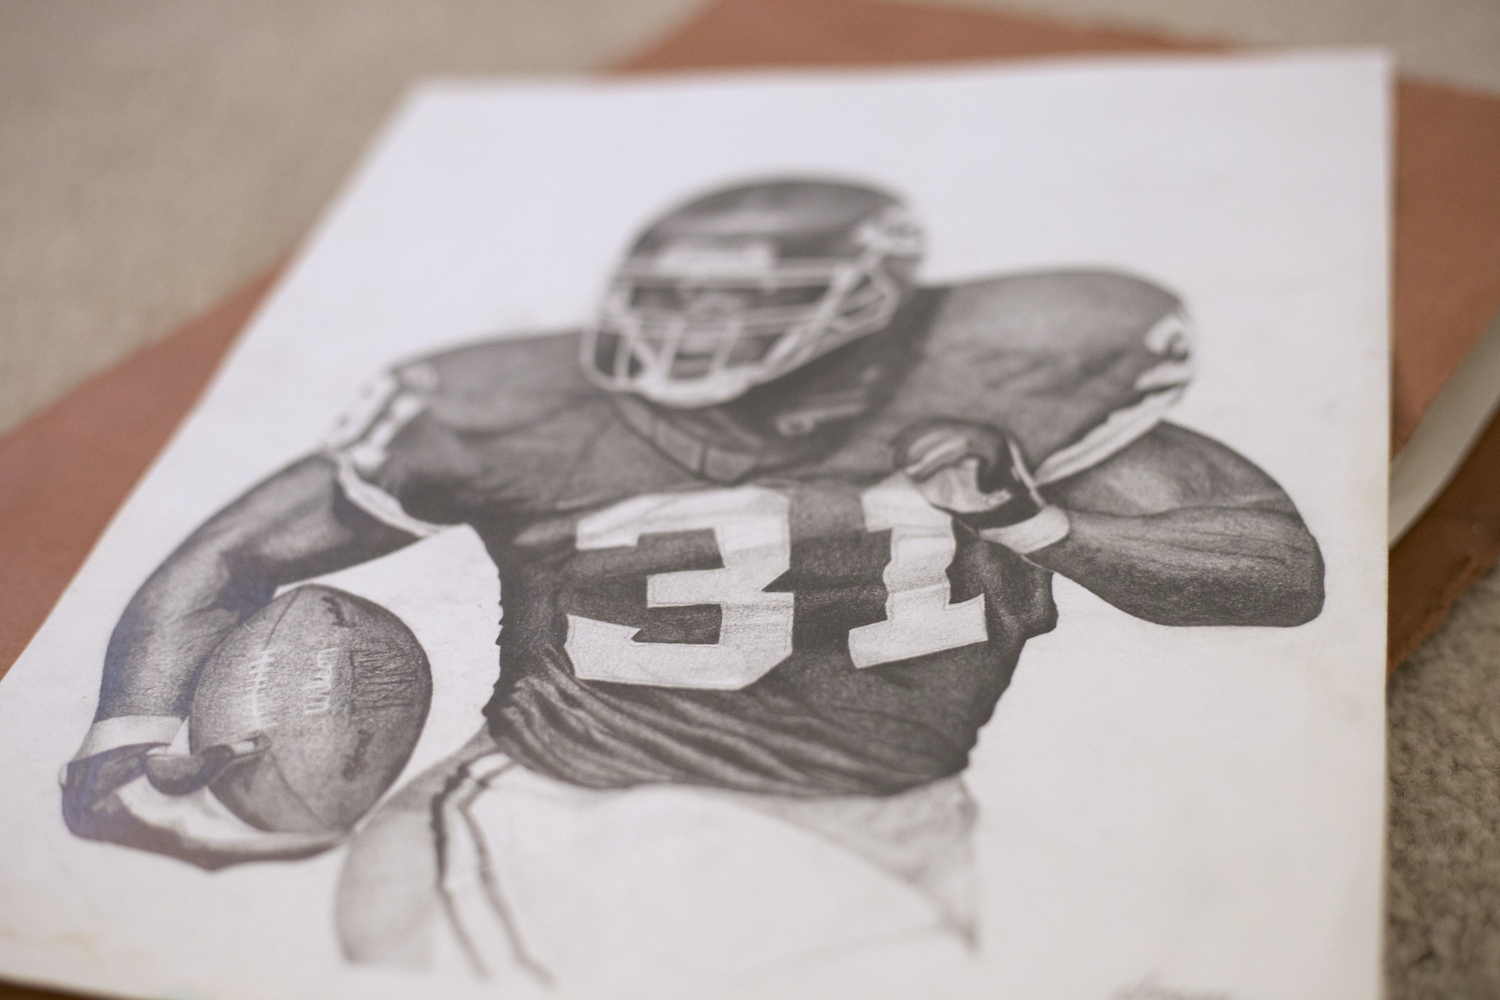 local-sketch-artist-for-hire-priest-holmes-drawn-portrait-for-sale-HOF-artist-for-nfl-players-custom-pencil-drawing-portraits-for-sale